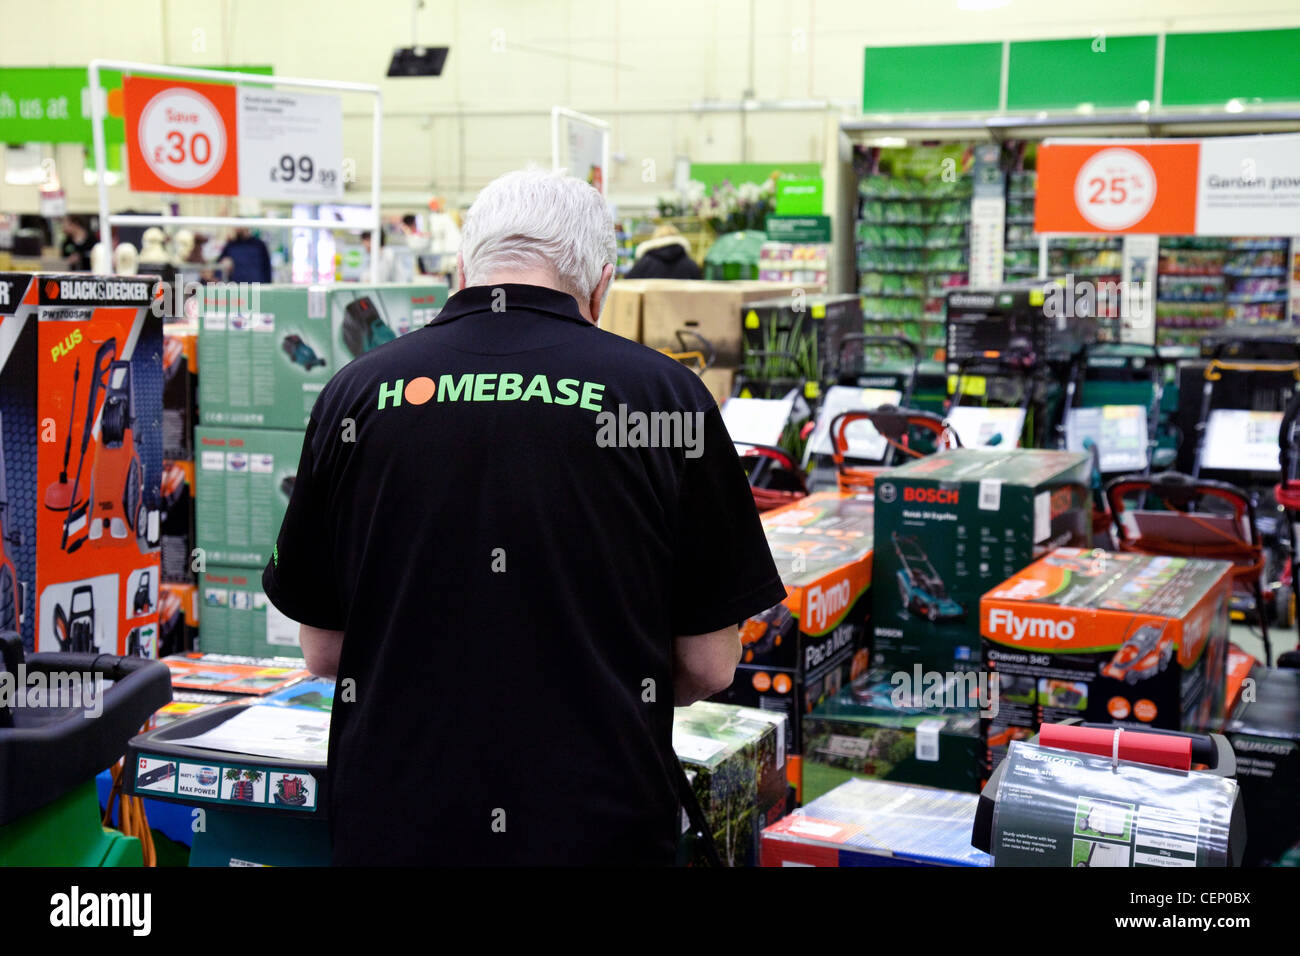 Staff At Work In Homebase, Newmarket Suffolk UK Stock